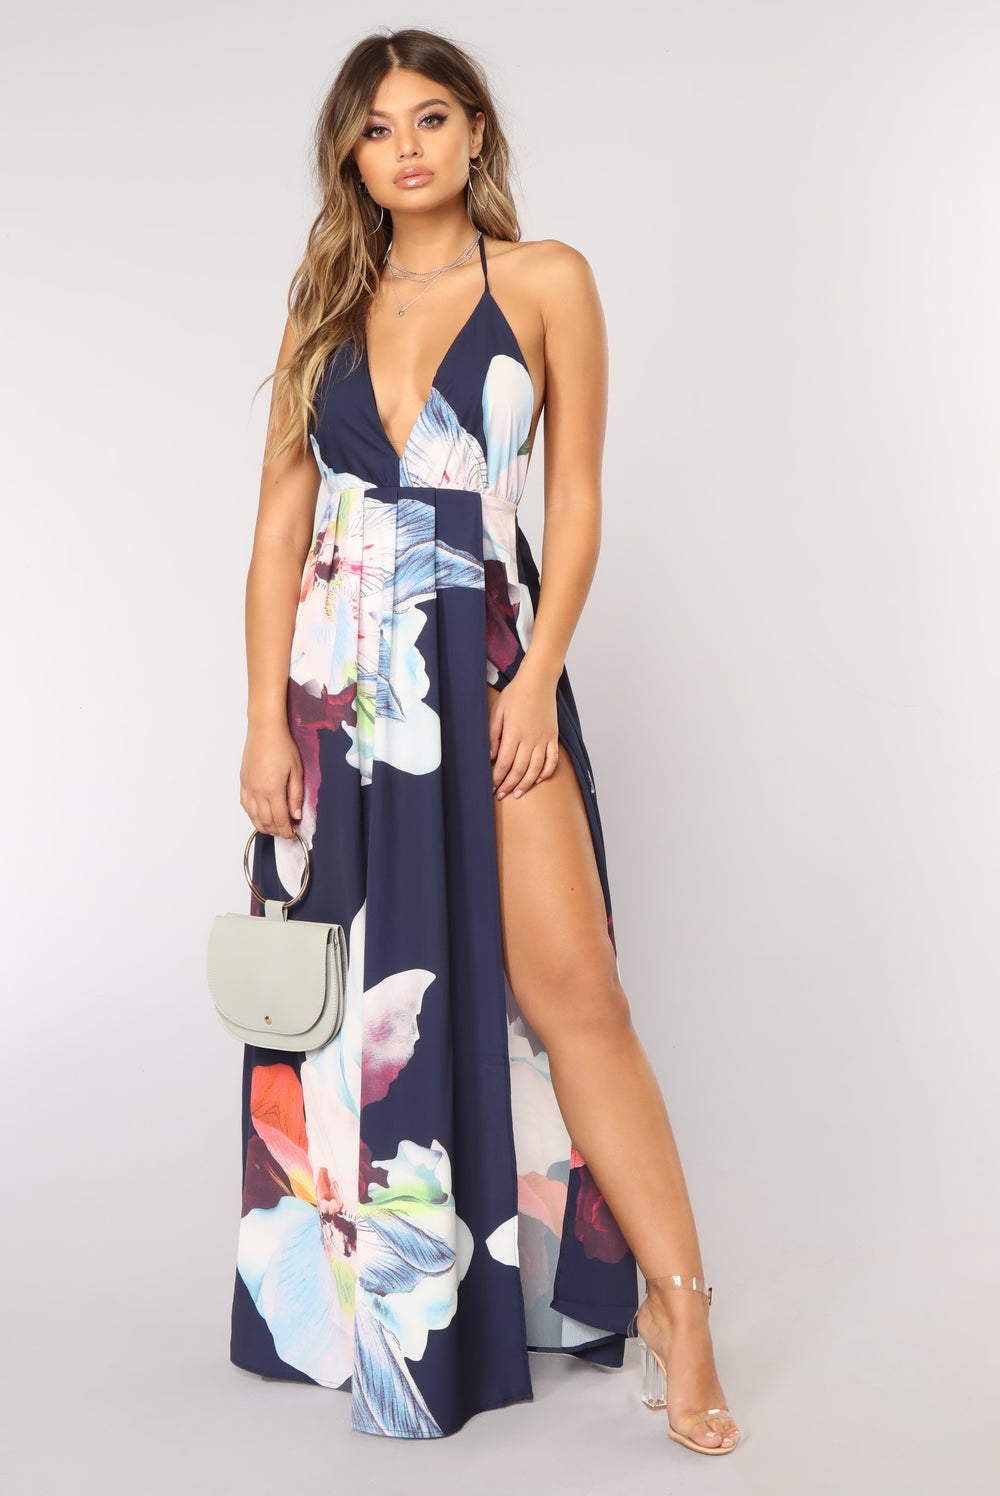 Flowers In The Breeze Maxi Dress - Navy